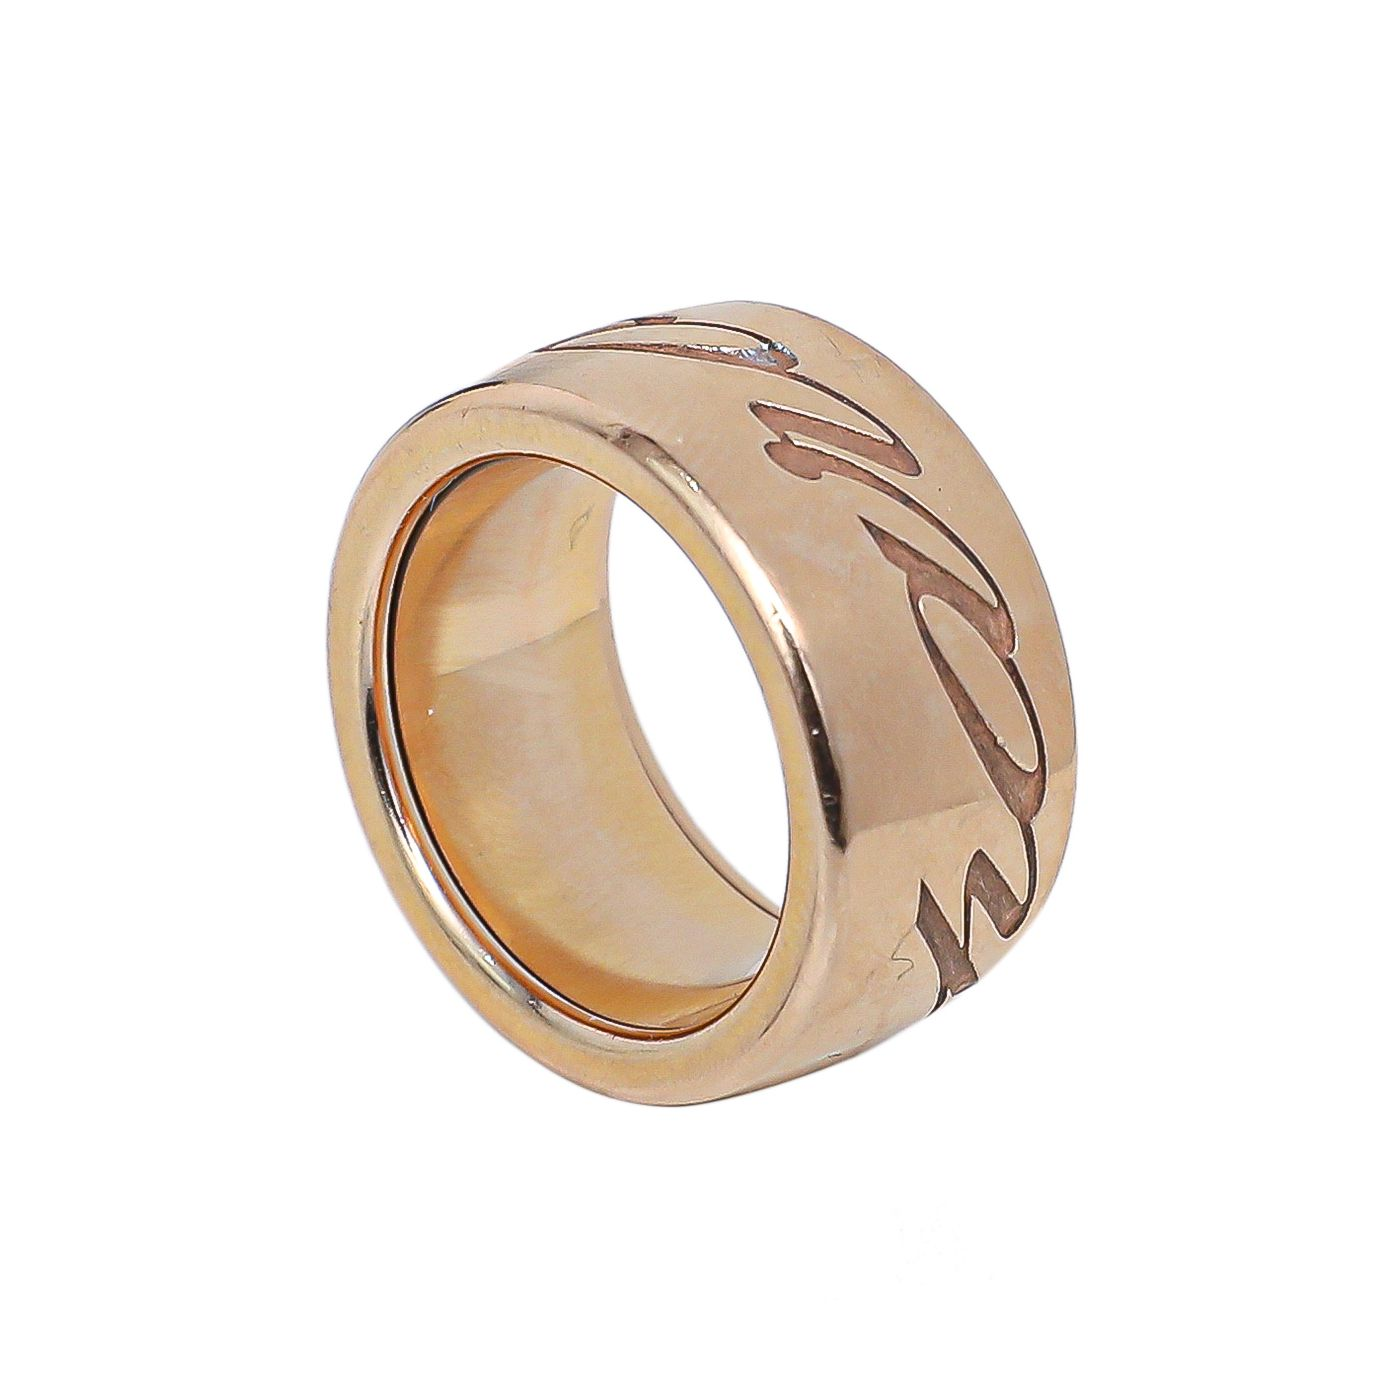 Chopard 18K Rose Gold Chopardissimo Ring small